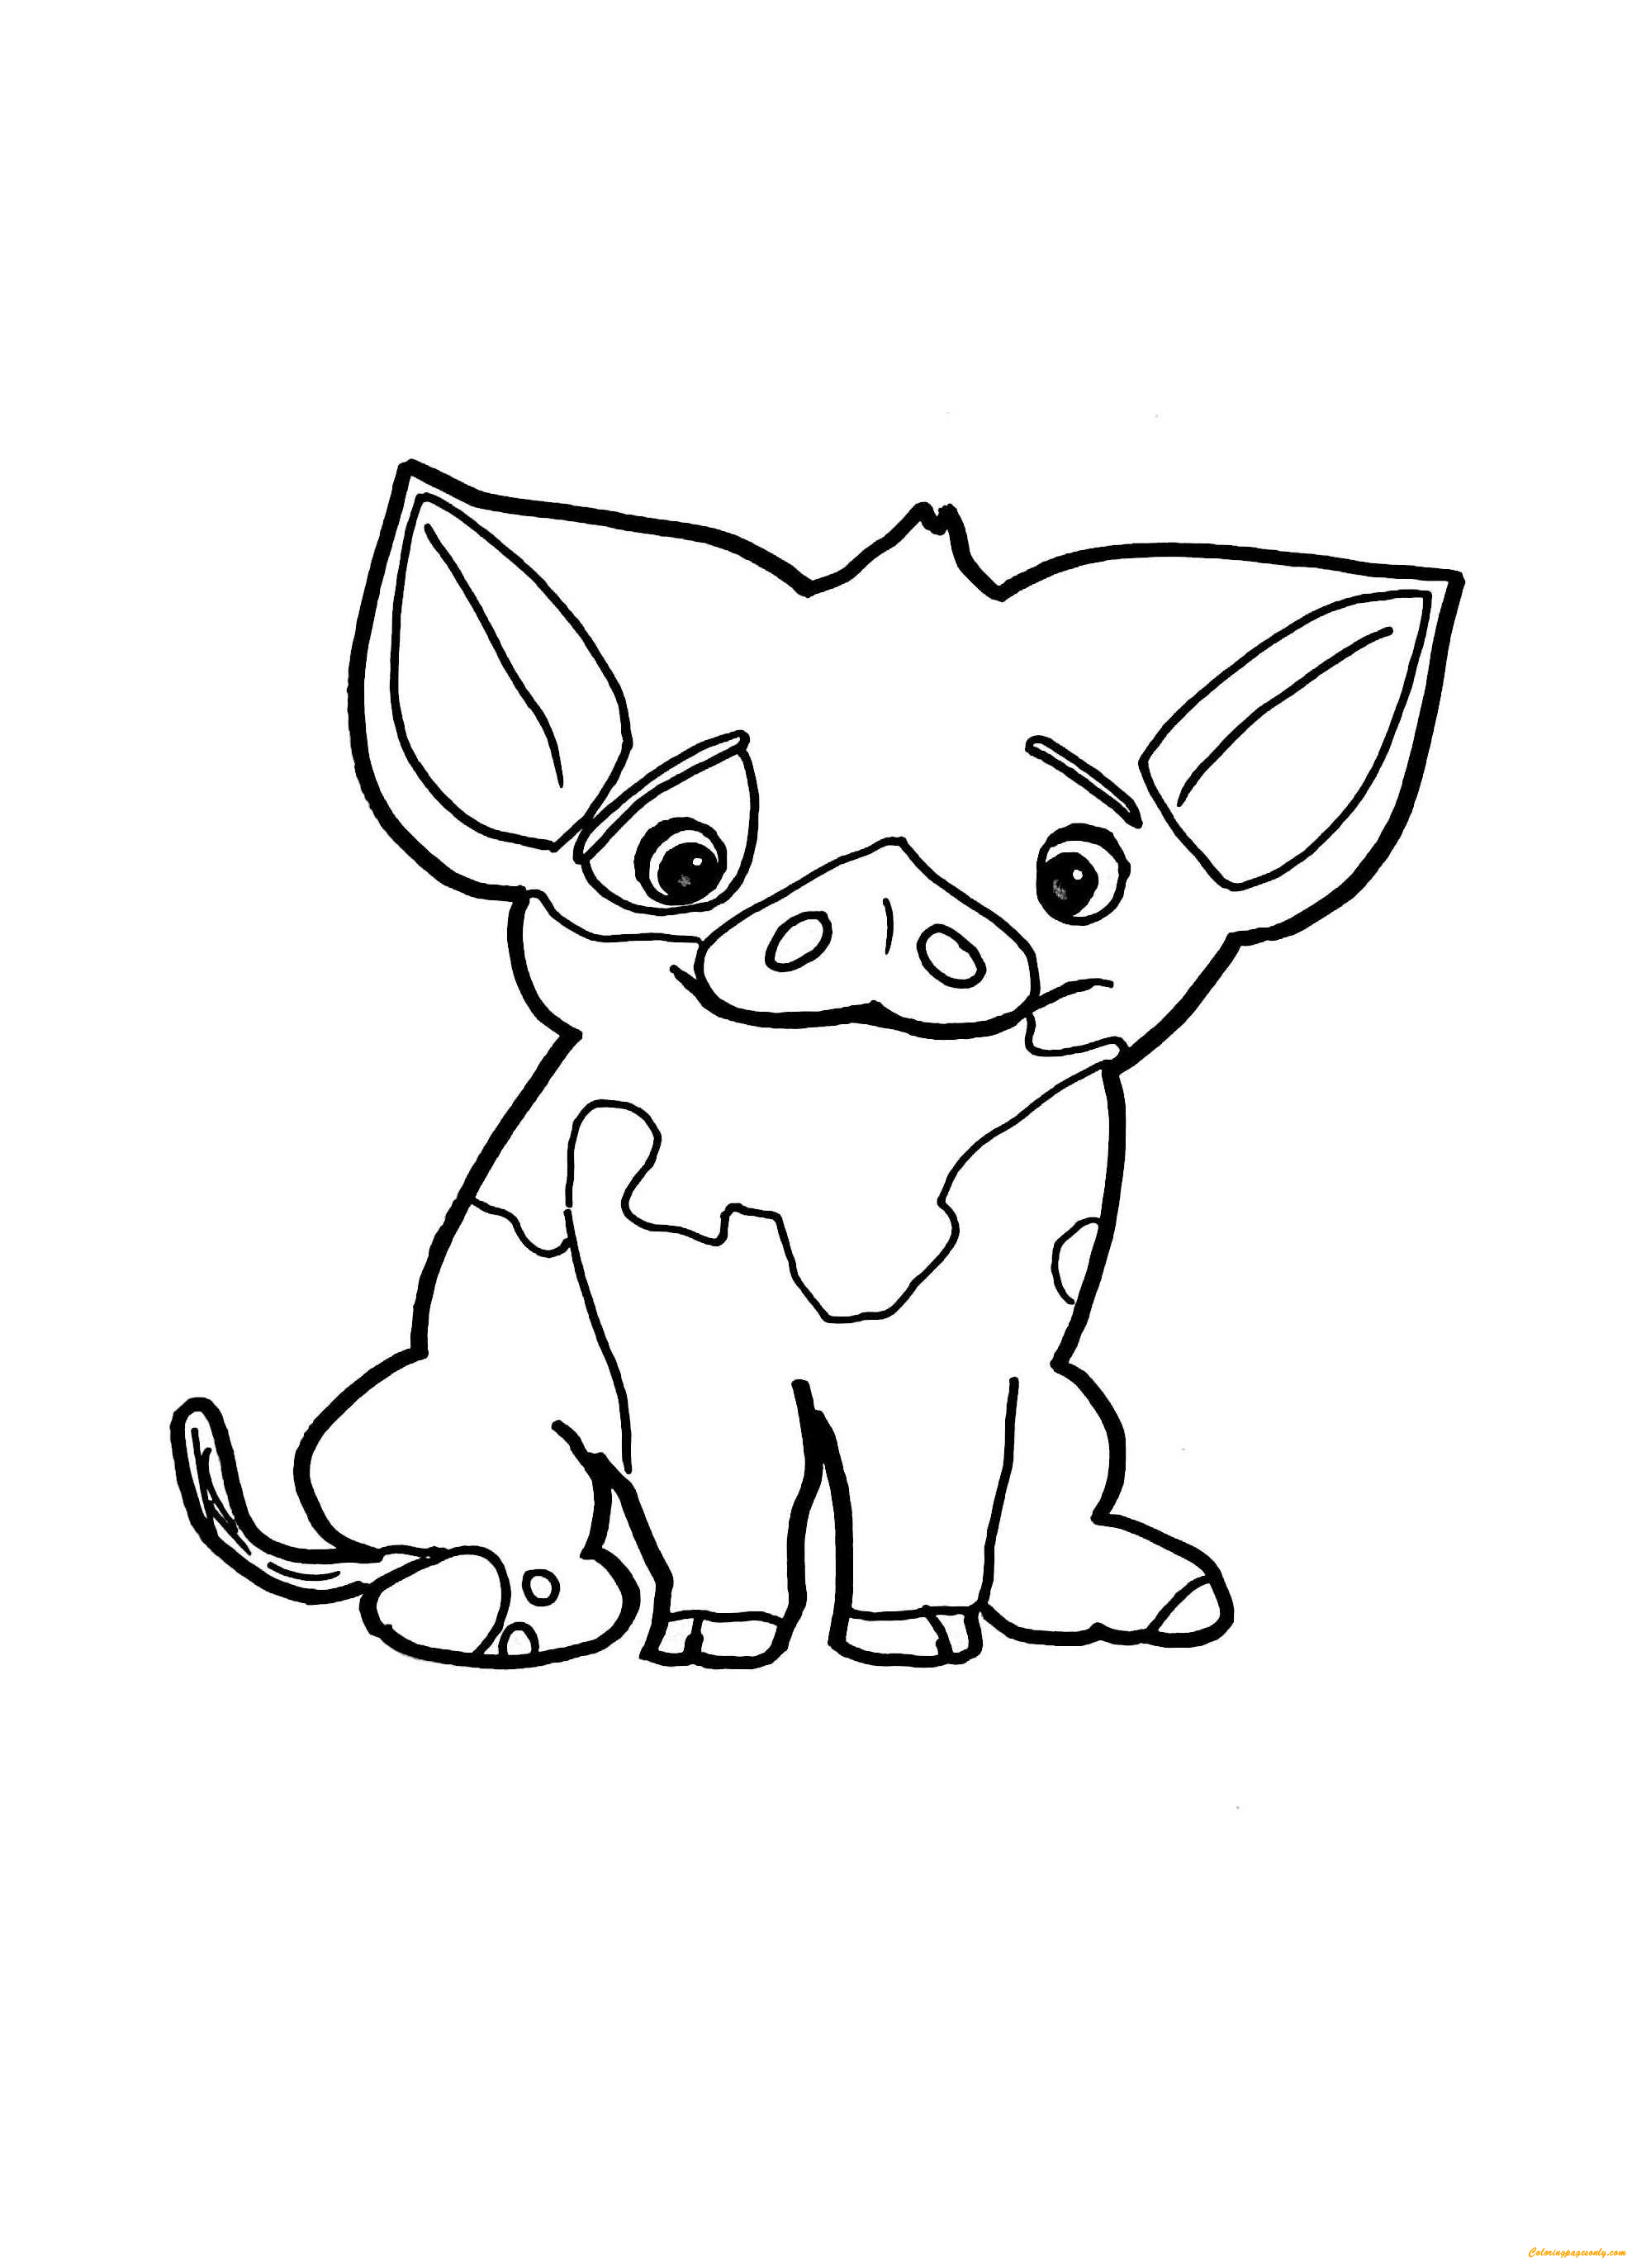 coloring page pig pua pig from moana 5 coloring pages cartoons coloring pig page coloring